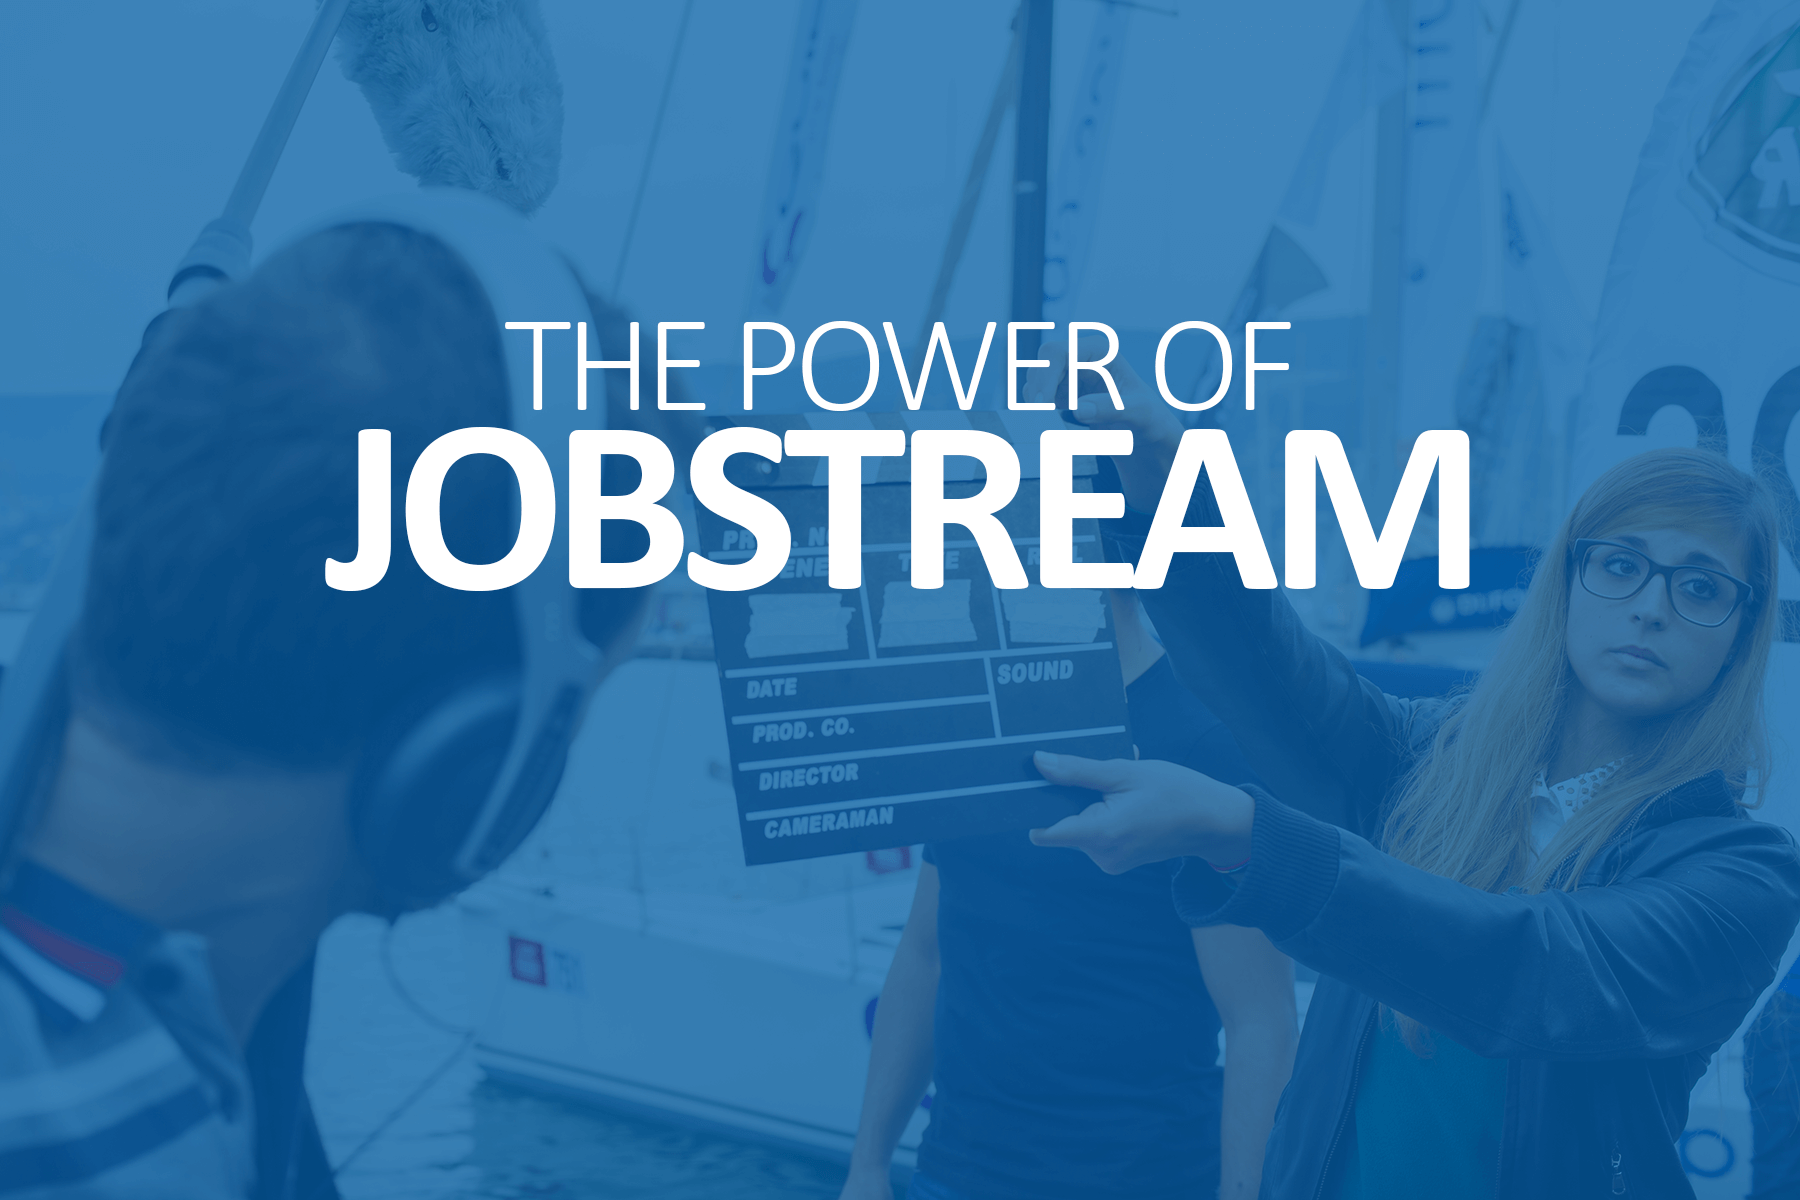 tns case study reveals the power of jobstream